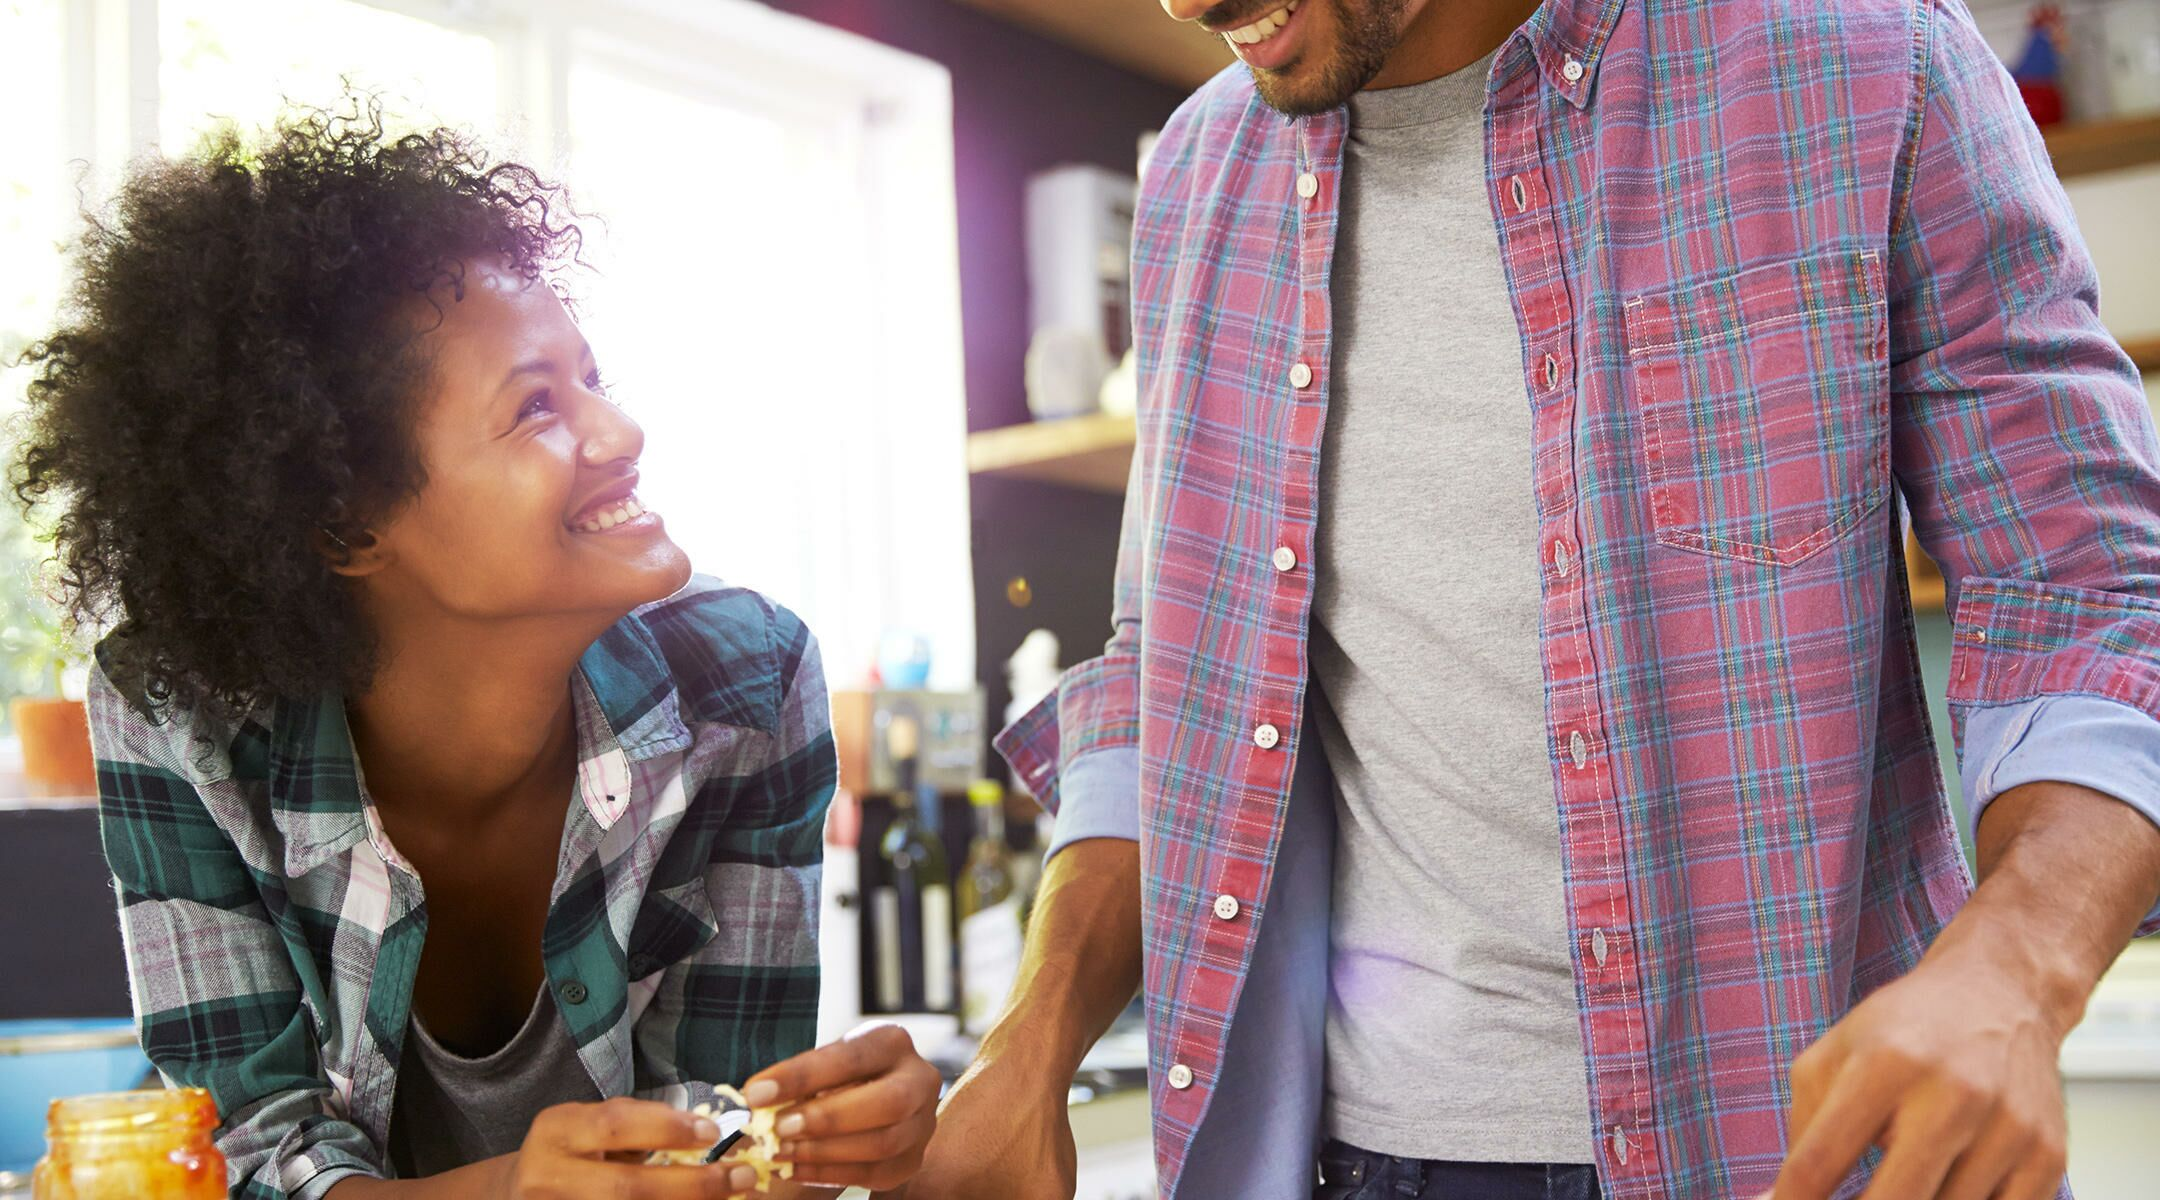 6 Sexy Ways to Keep Your Relationship Hot After Baby